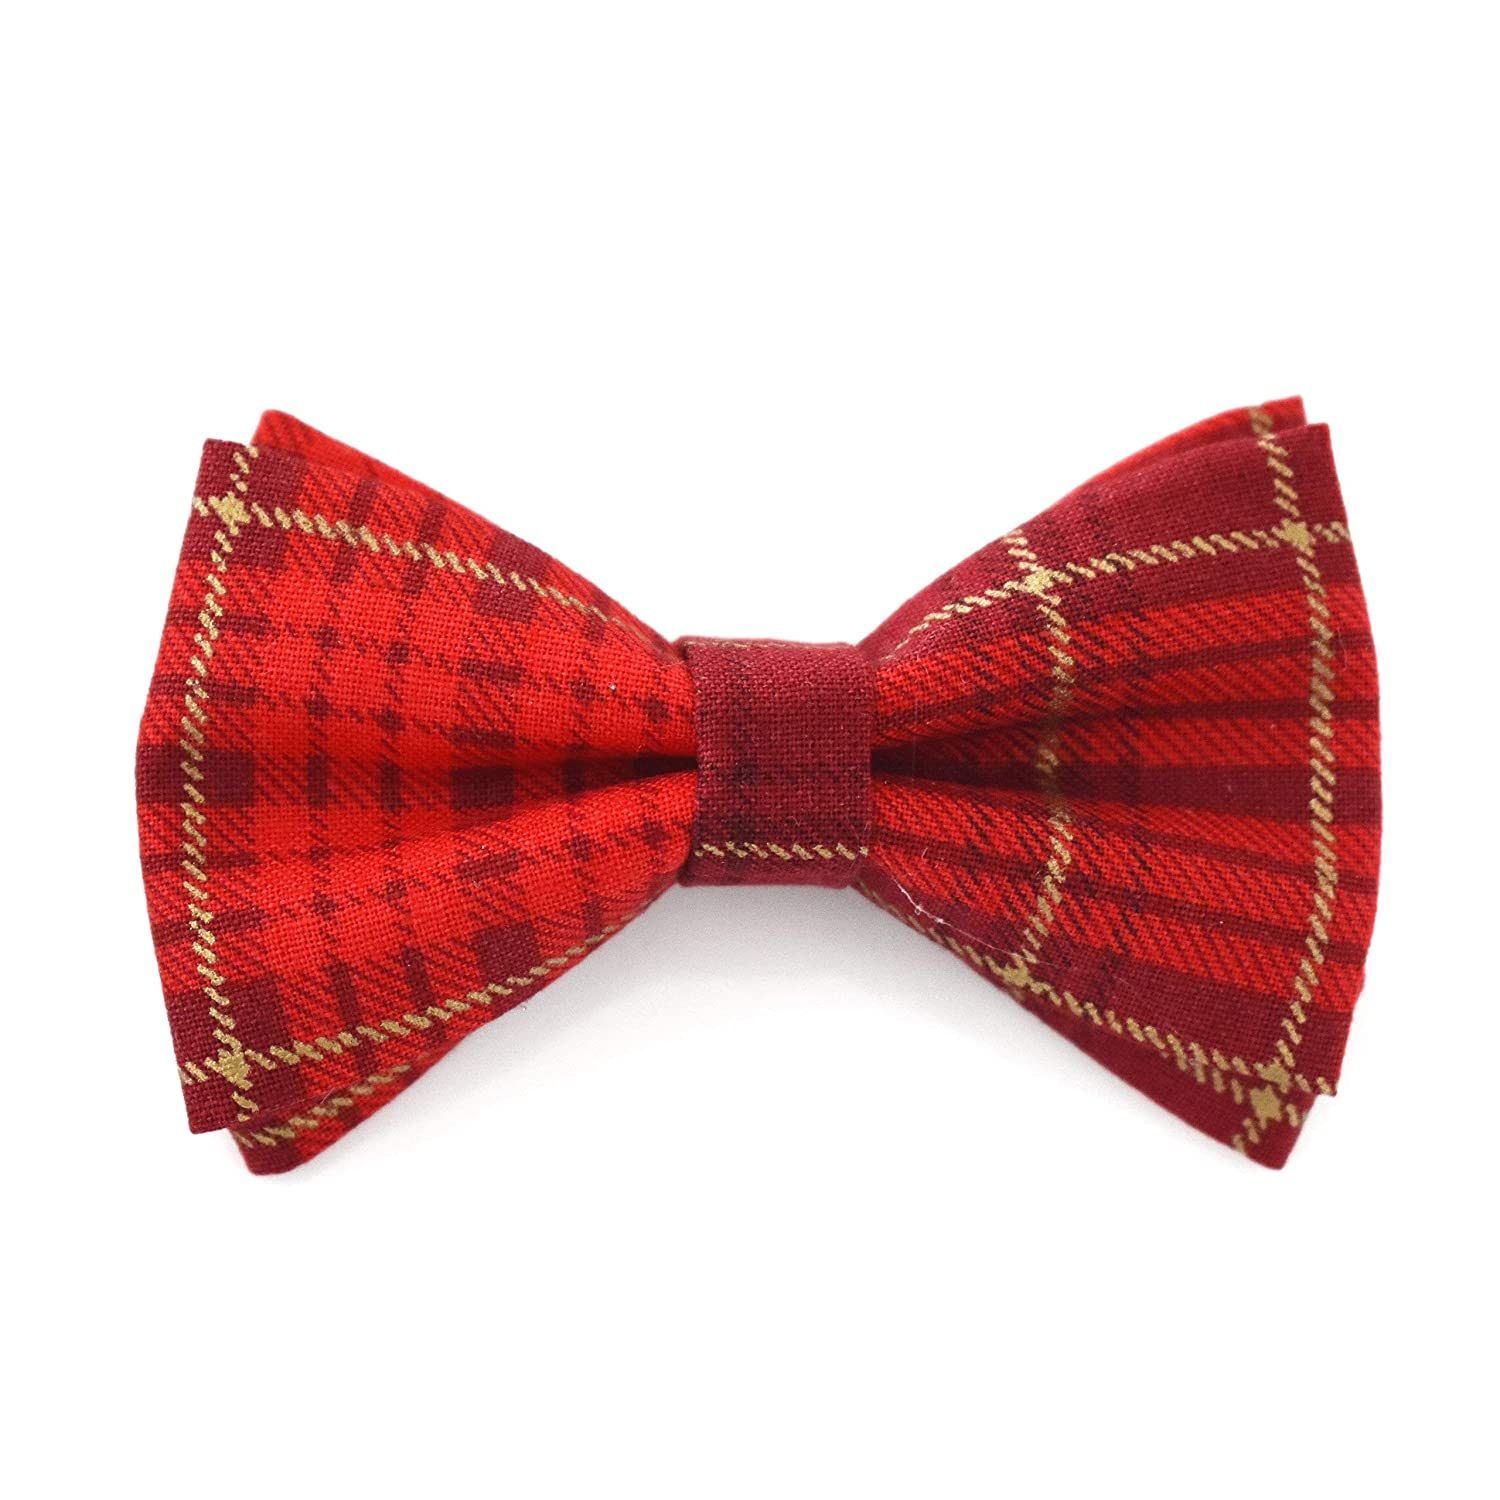 Red Gold Plaid Tartan Bow Tie Clip On Fits Baby Toddler Boy Handmade (One Size Fits All) Holiday Bow Tie - by Blossom Design